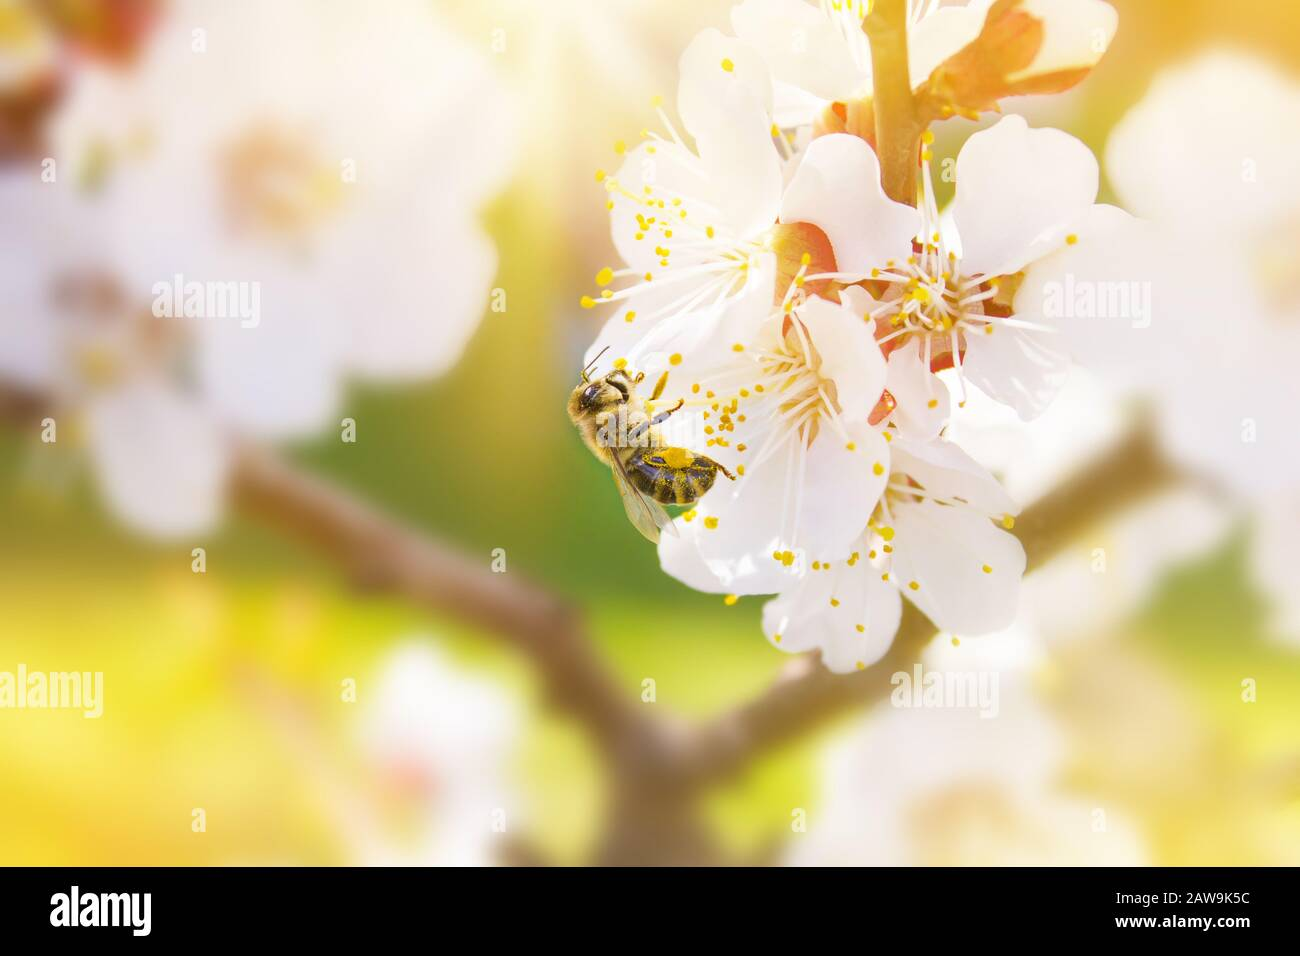 Spring. Bee collects nectar (pollen) from the white flowers of a flowering cherry on a  blurred background of nature. Lights of a sun. Blurred space f Stock Photo